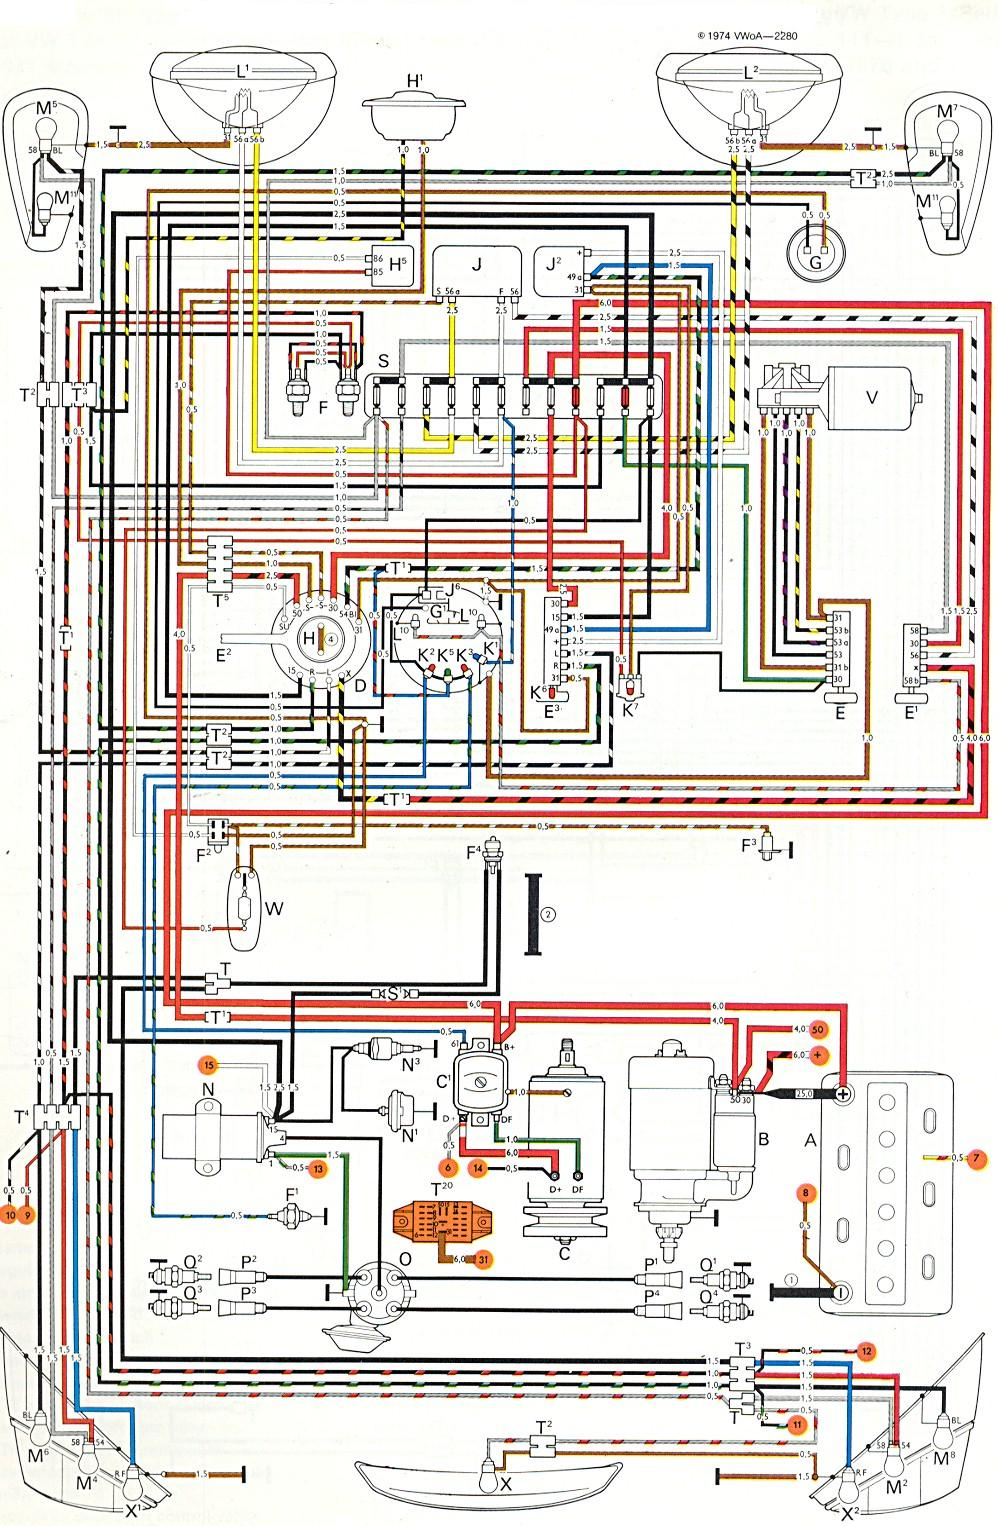 1973 Vw Bus Ignition Switch Wiring Diagram Ford 1600 Starter 73 Beetle Fuse Box Just Schematic Rh Lailamaed Co Uk Lawn Mower